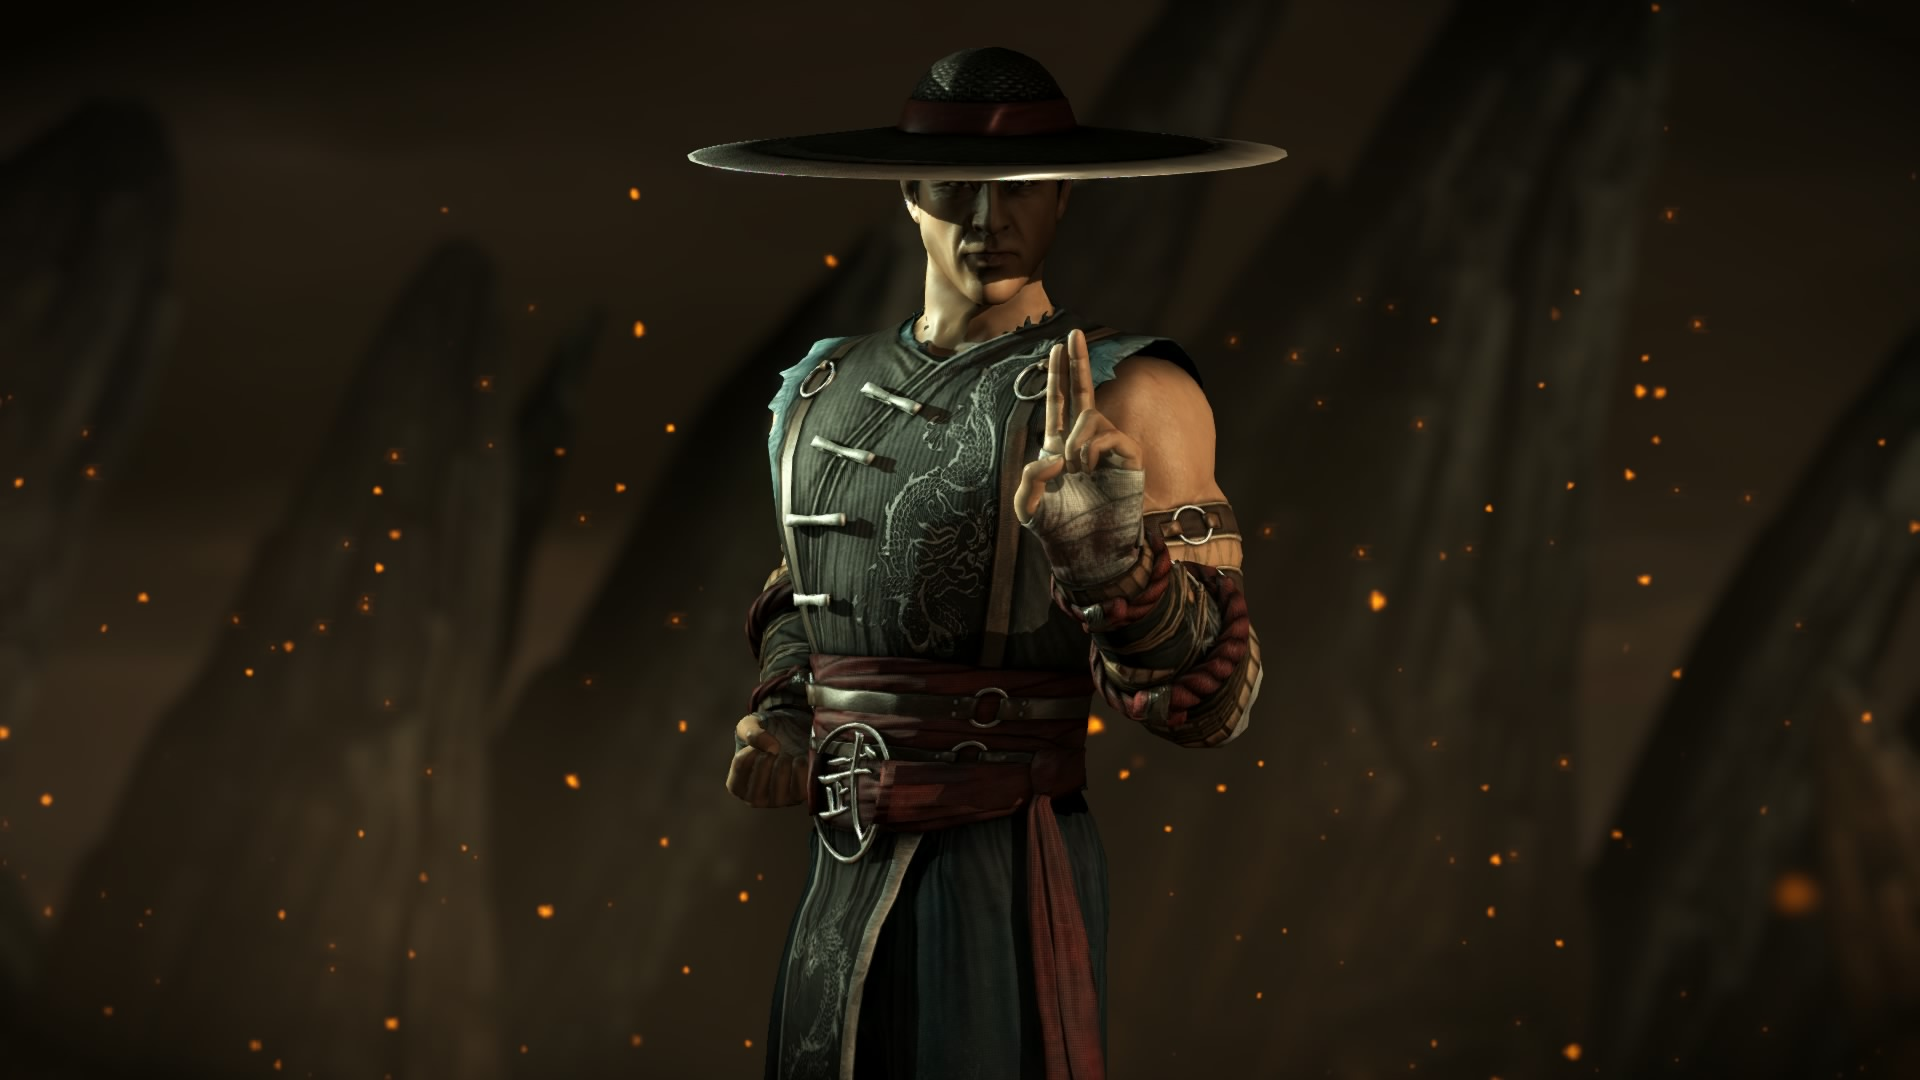 mortal kombat x wallpapers 1920x1080